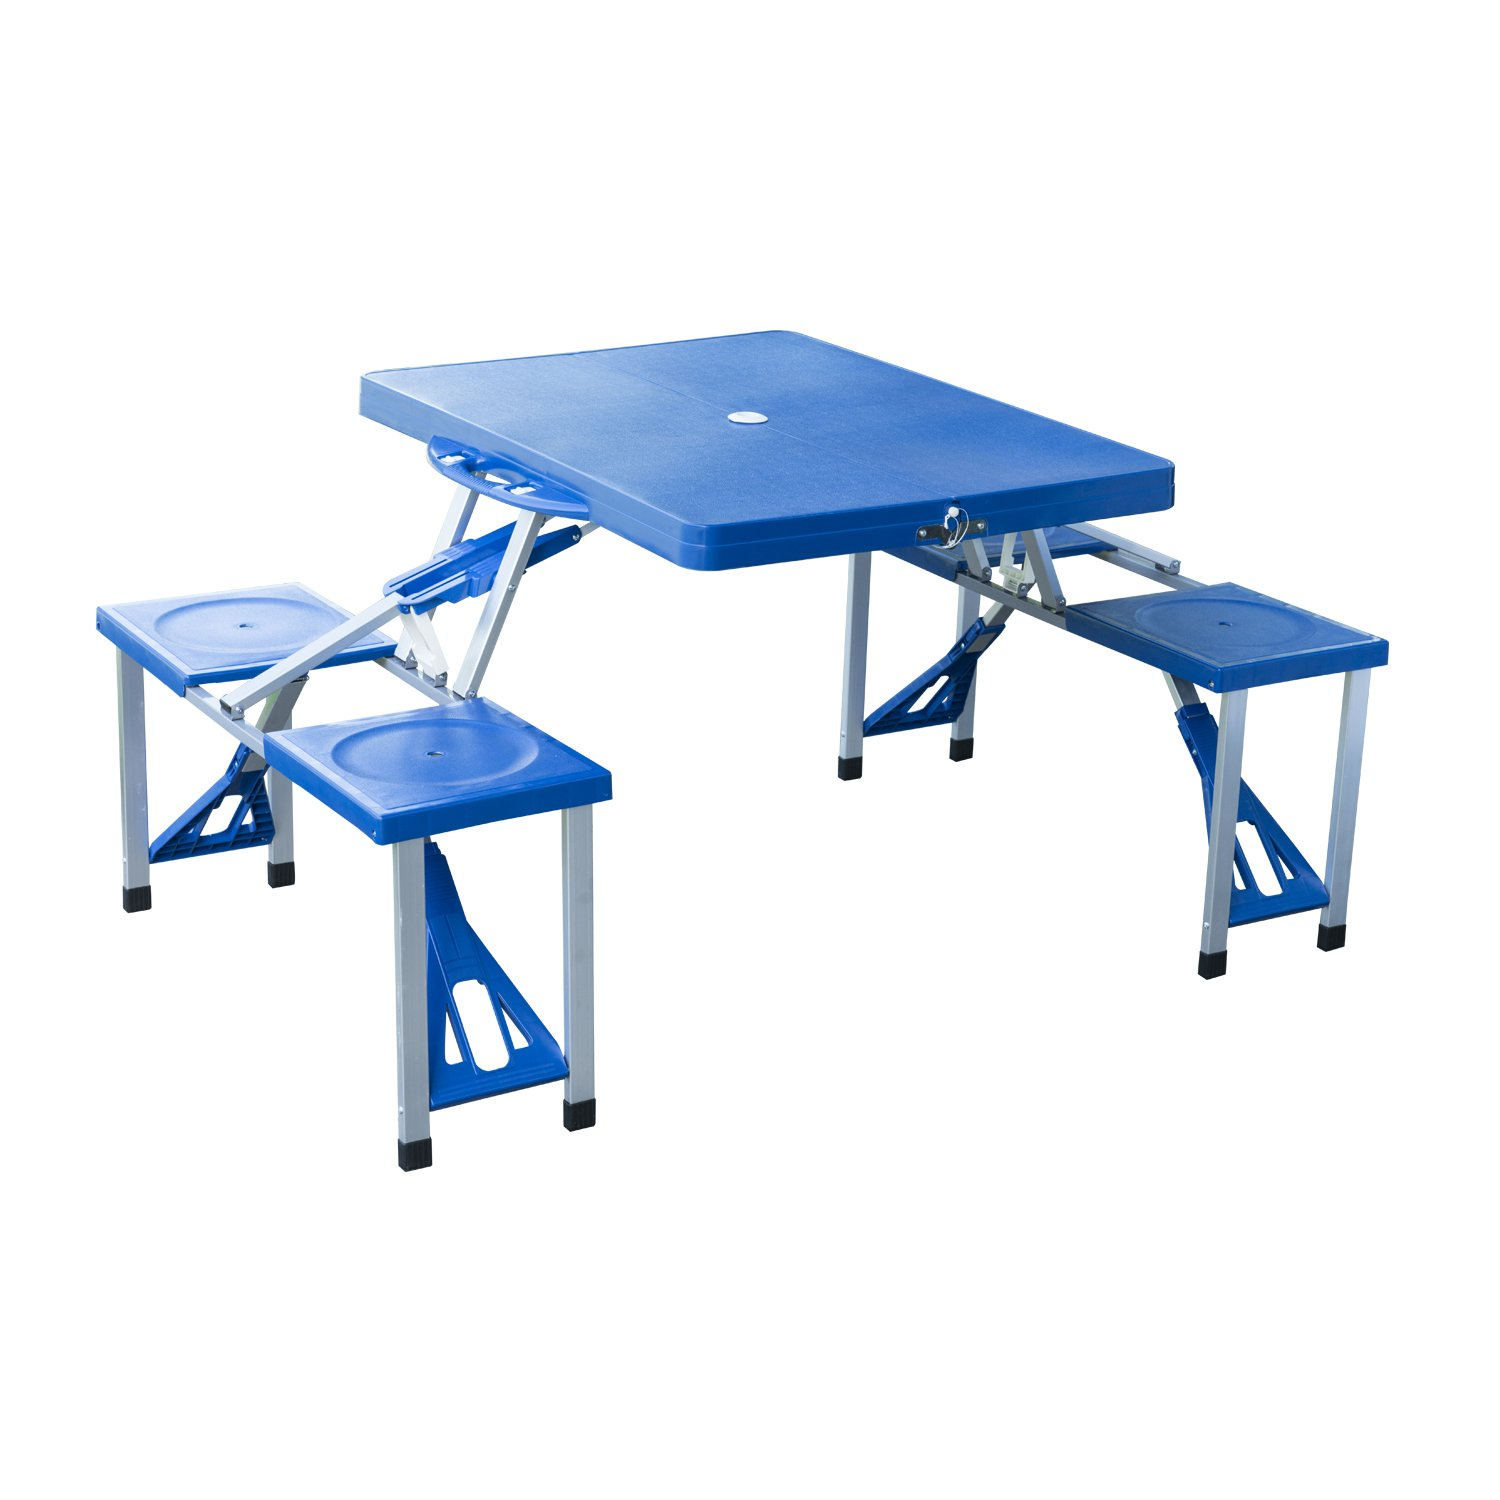 Amazon.com : Outsunny Portable Lightweight Folding Suitcase Picnic Table  W/4 Built In Chairs, Blue : Sports U0026 Outdoors